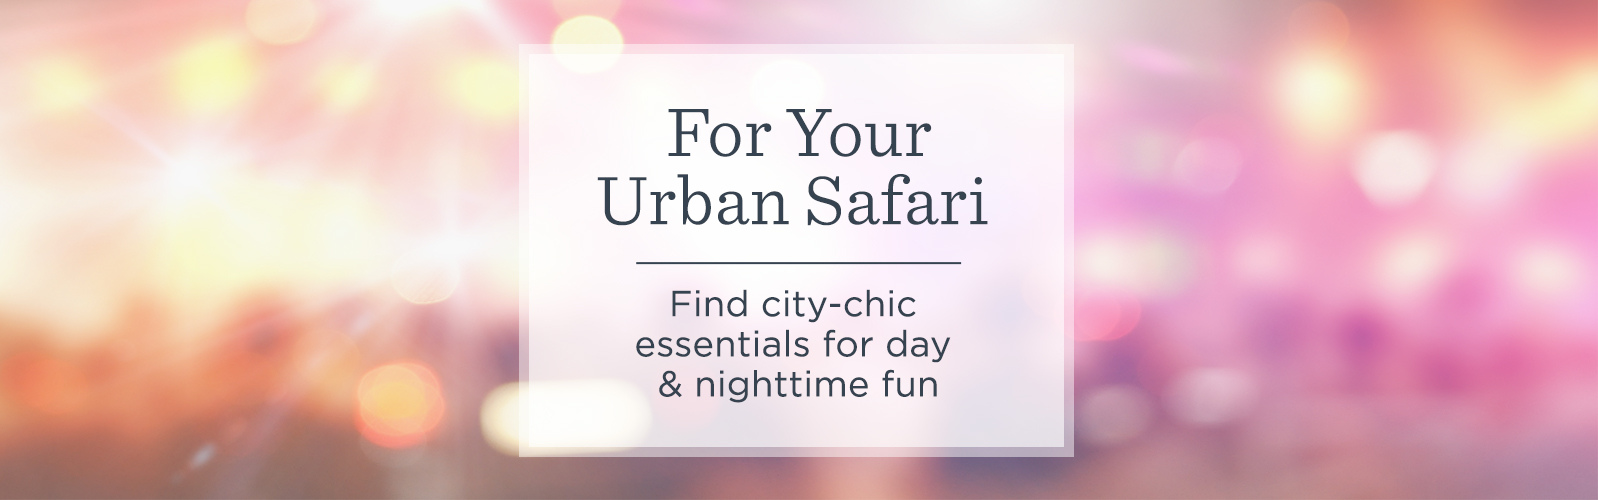 For Your Urban Safari  --  Find city-chic essentials for day & nighttime fun